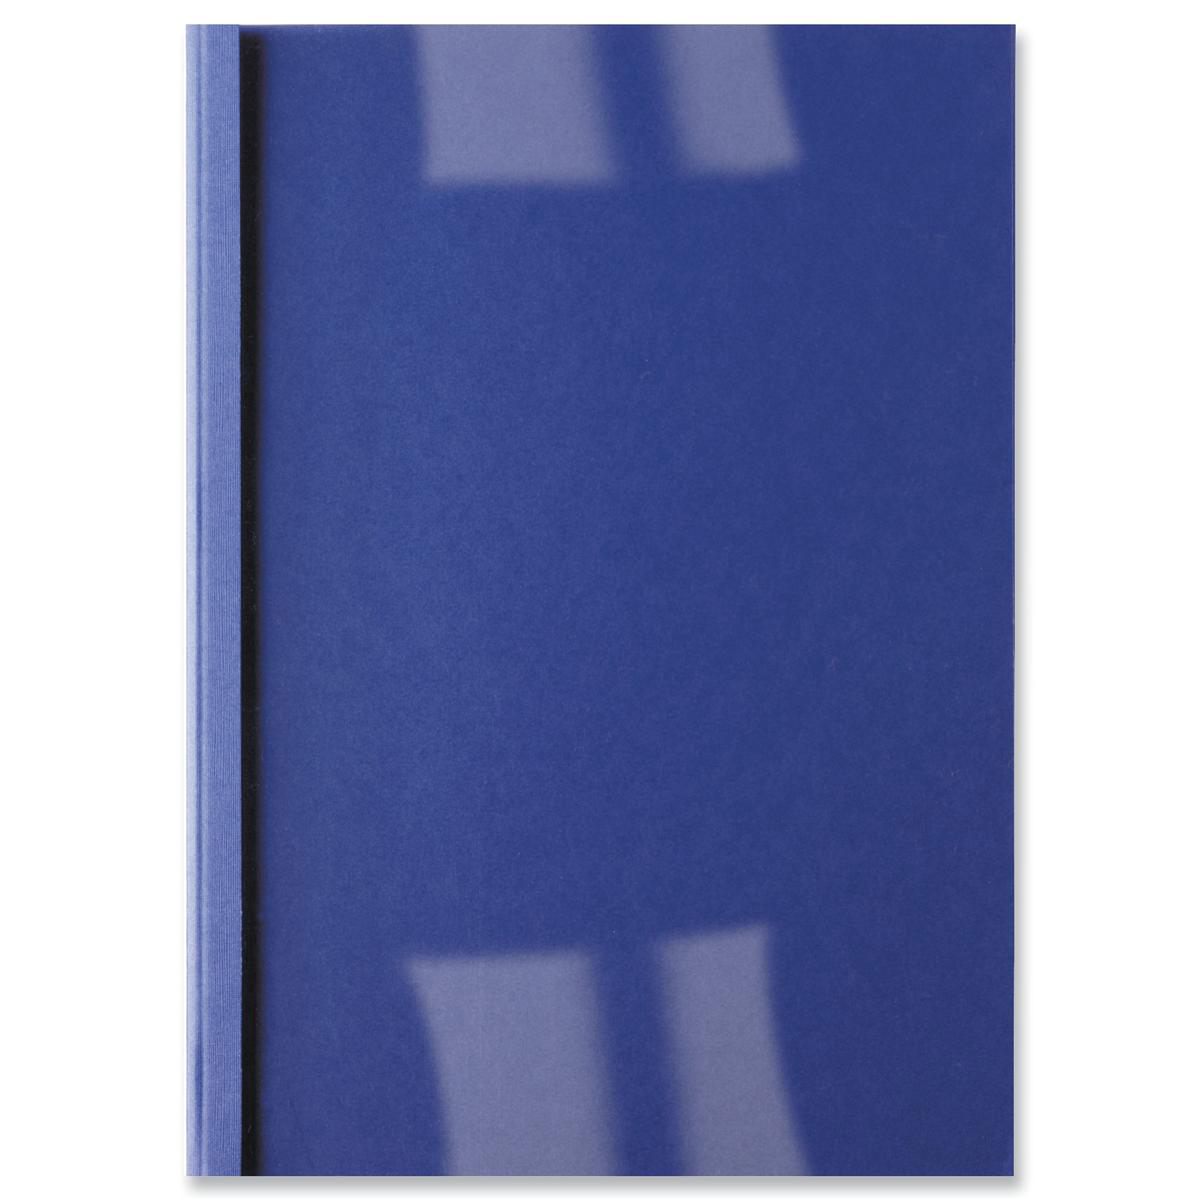 GBC Thermal Binding Covers 1.5mm Front PVC Clear Back Leathergrain A4 Royal Blue Ref IB451003 Pack 100